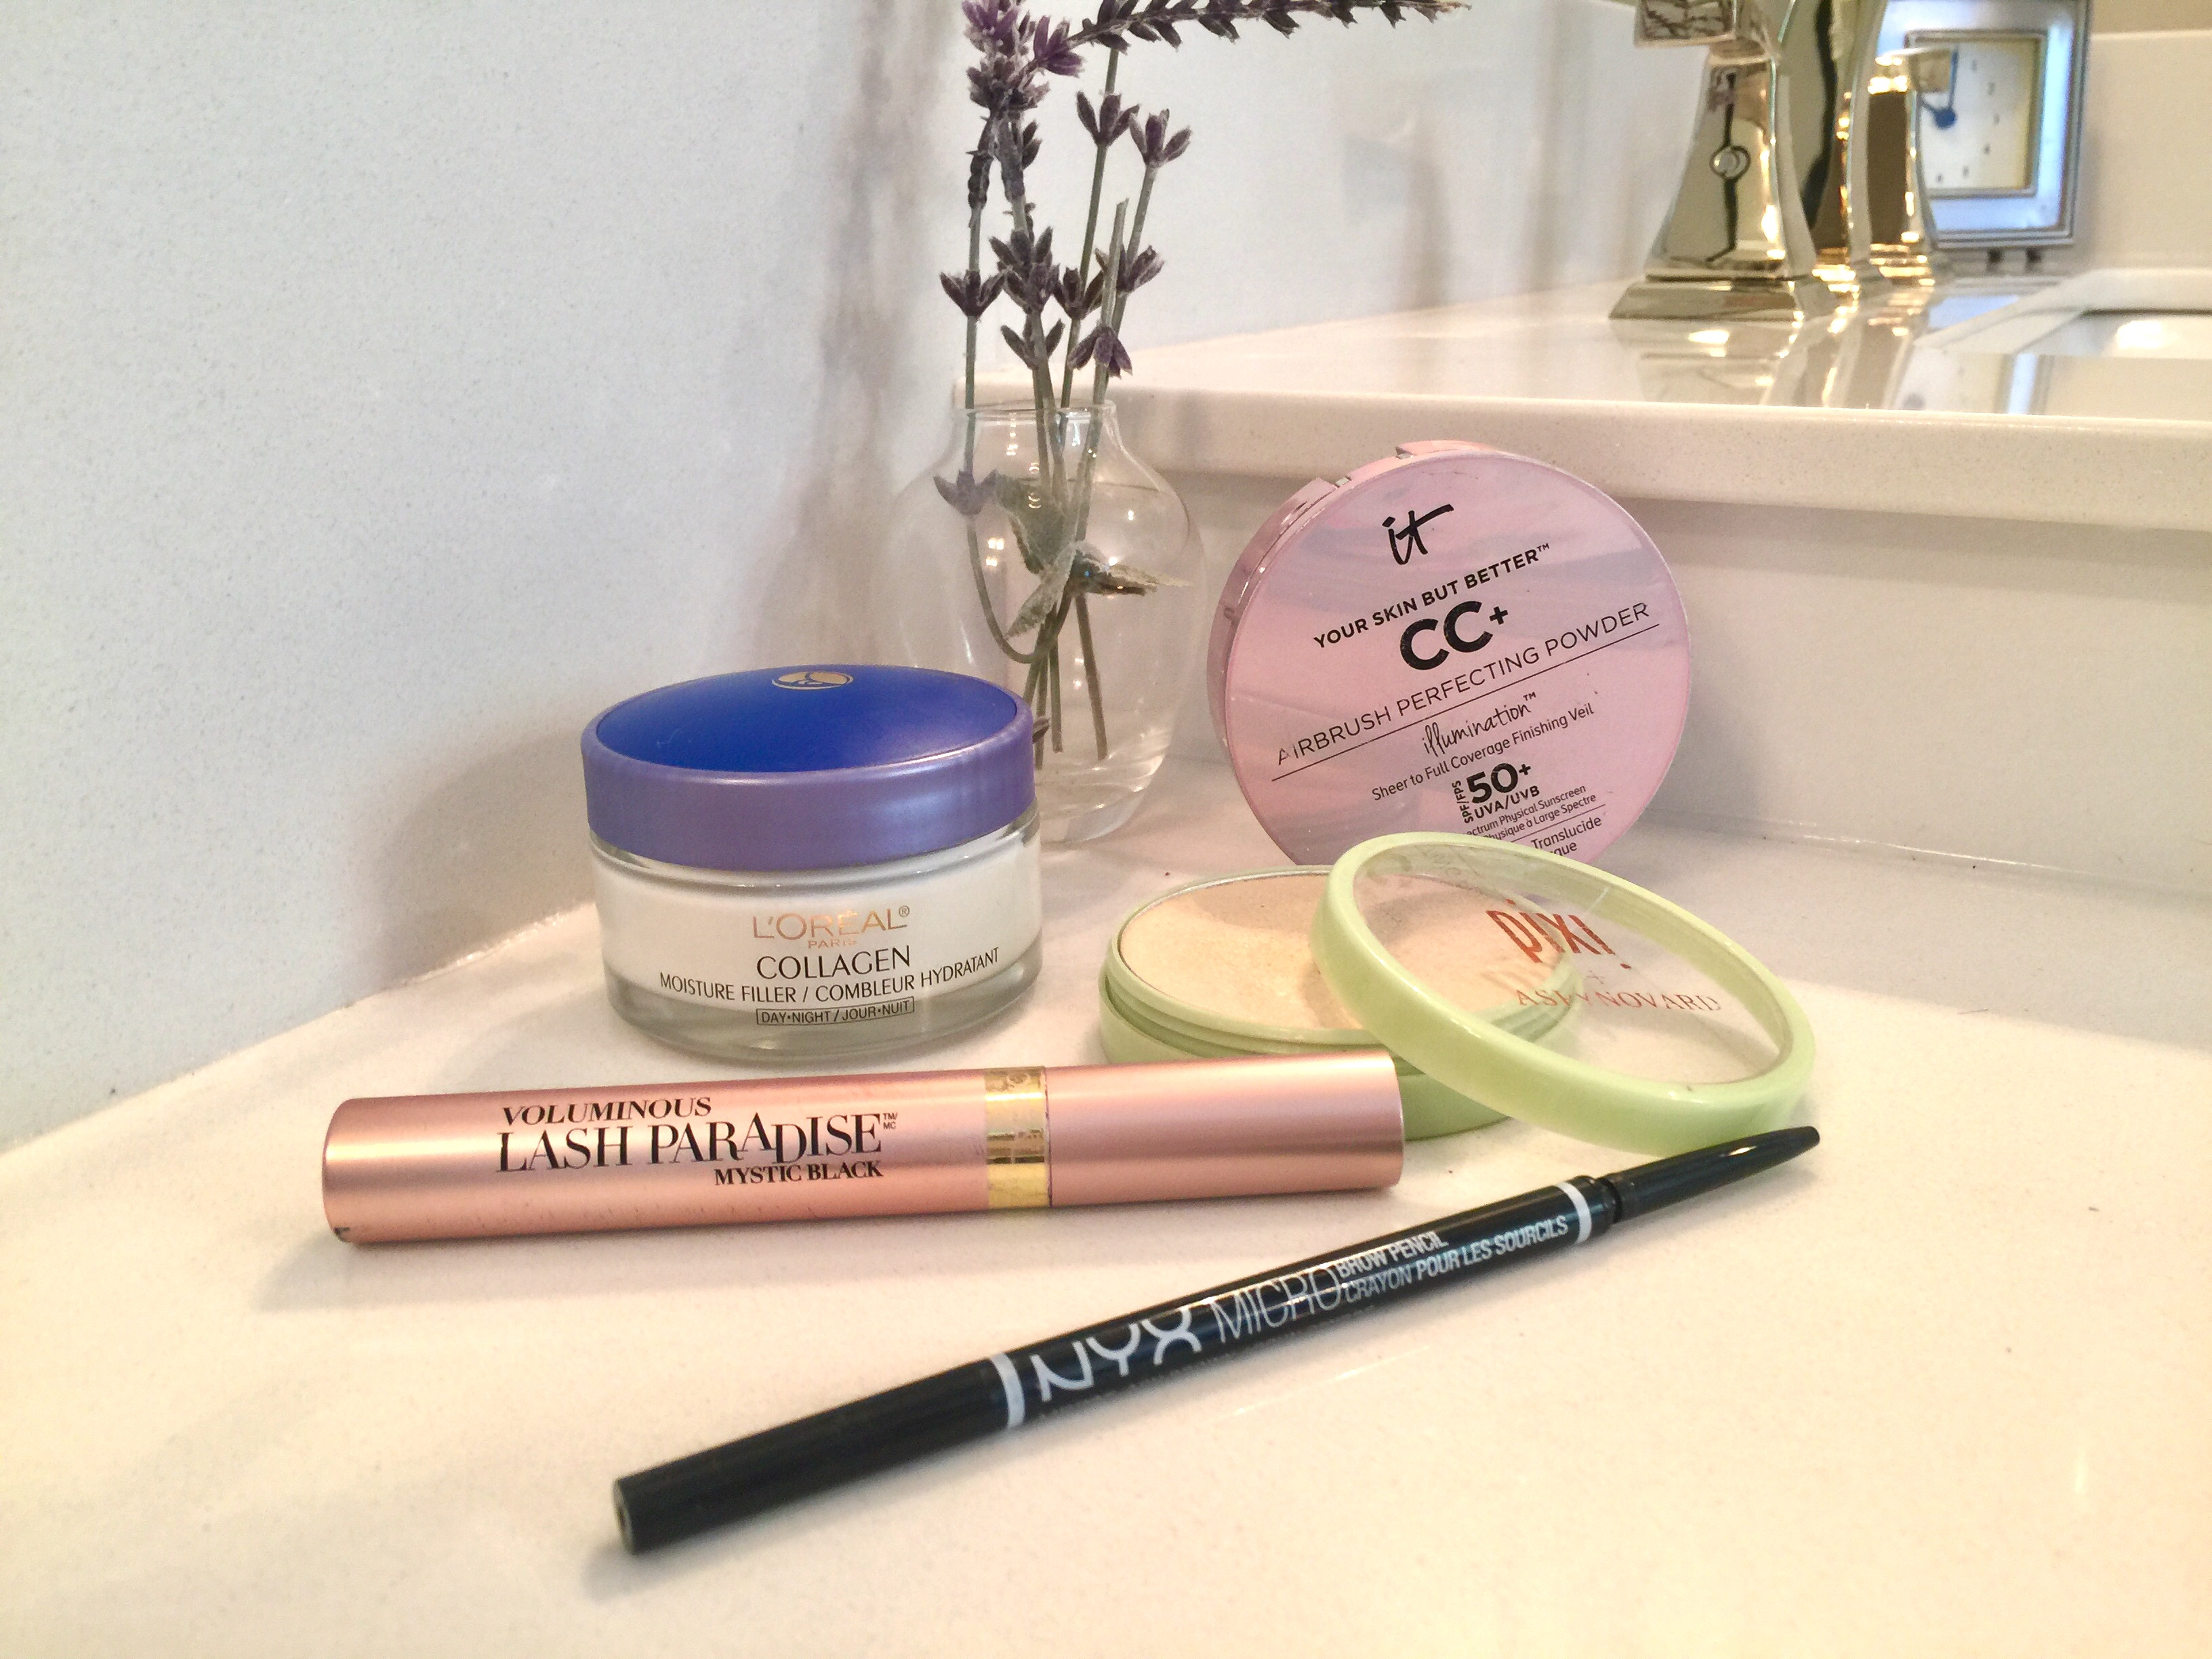 5 Things This Makeup Artist Puts On Her Face Everyday